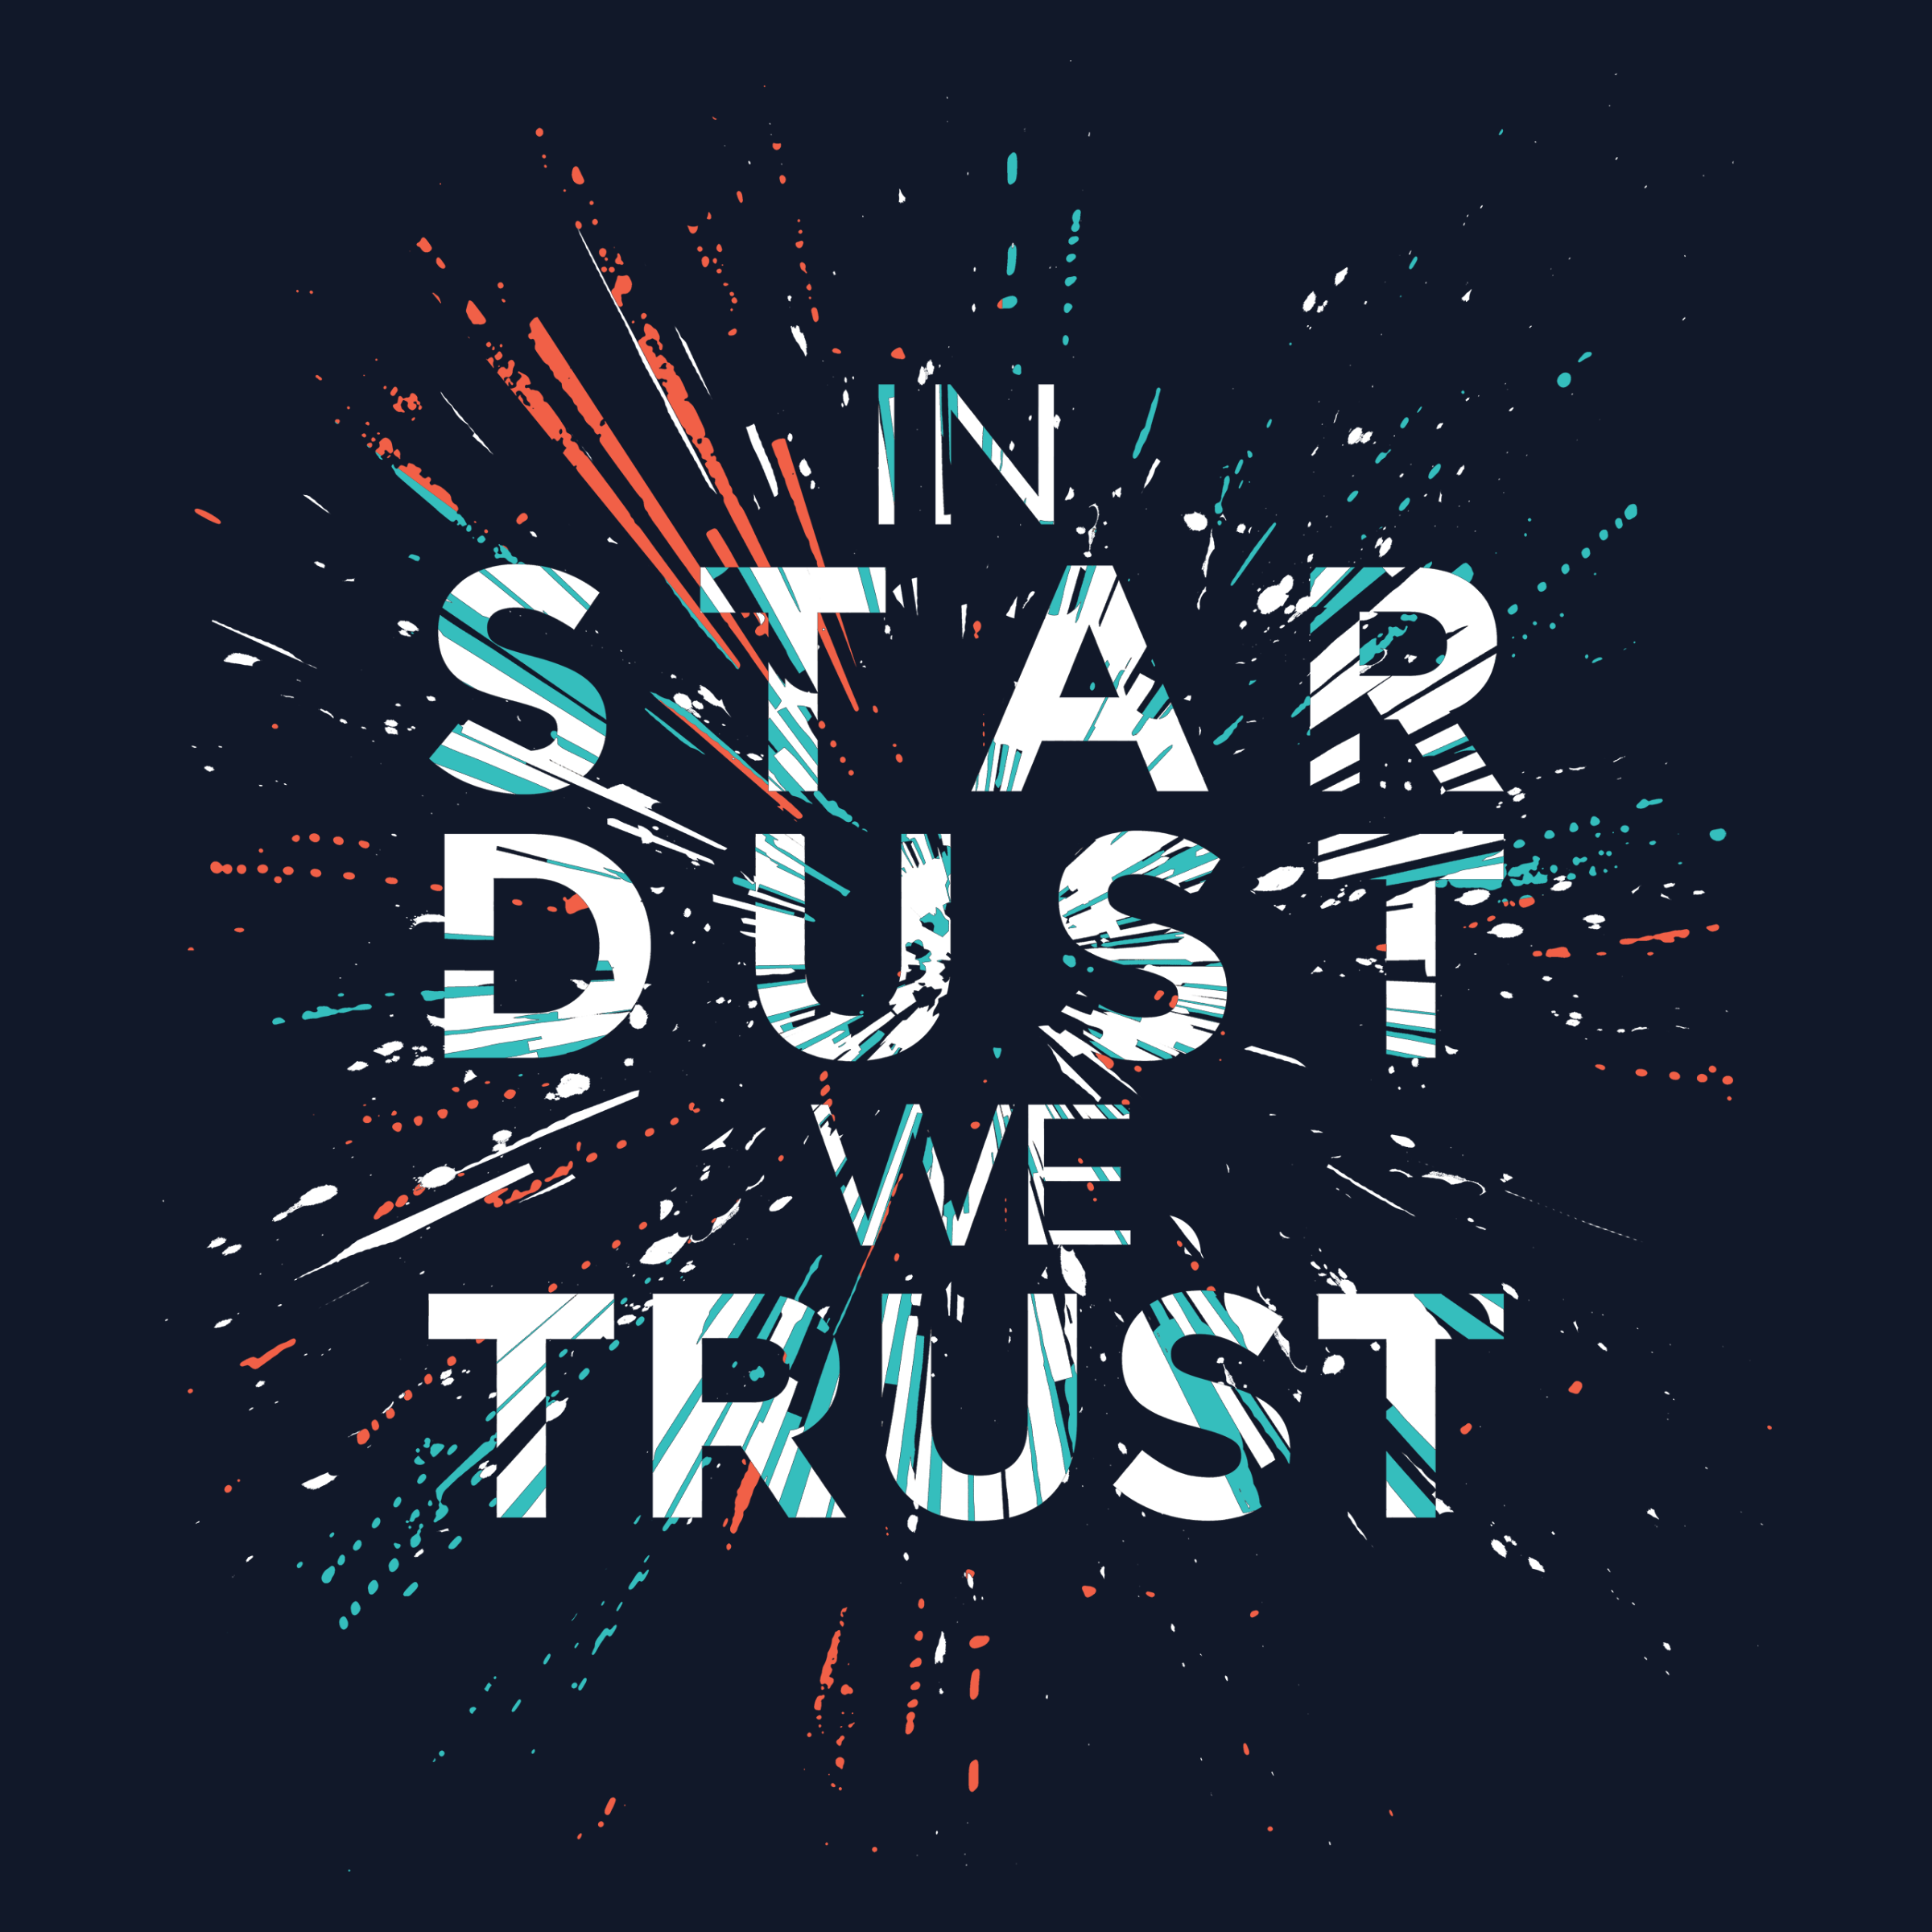 In Stardust We Trust